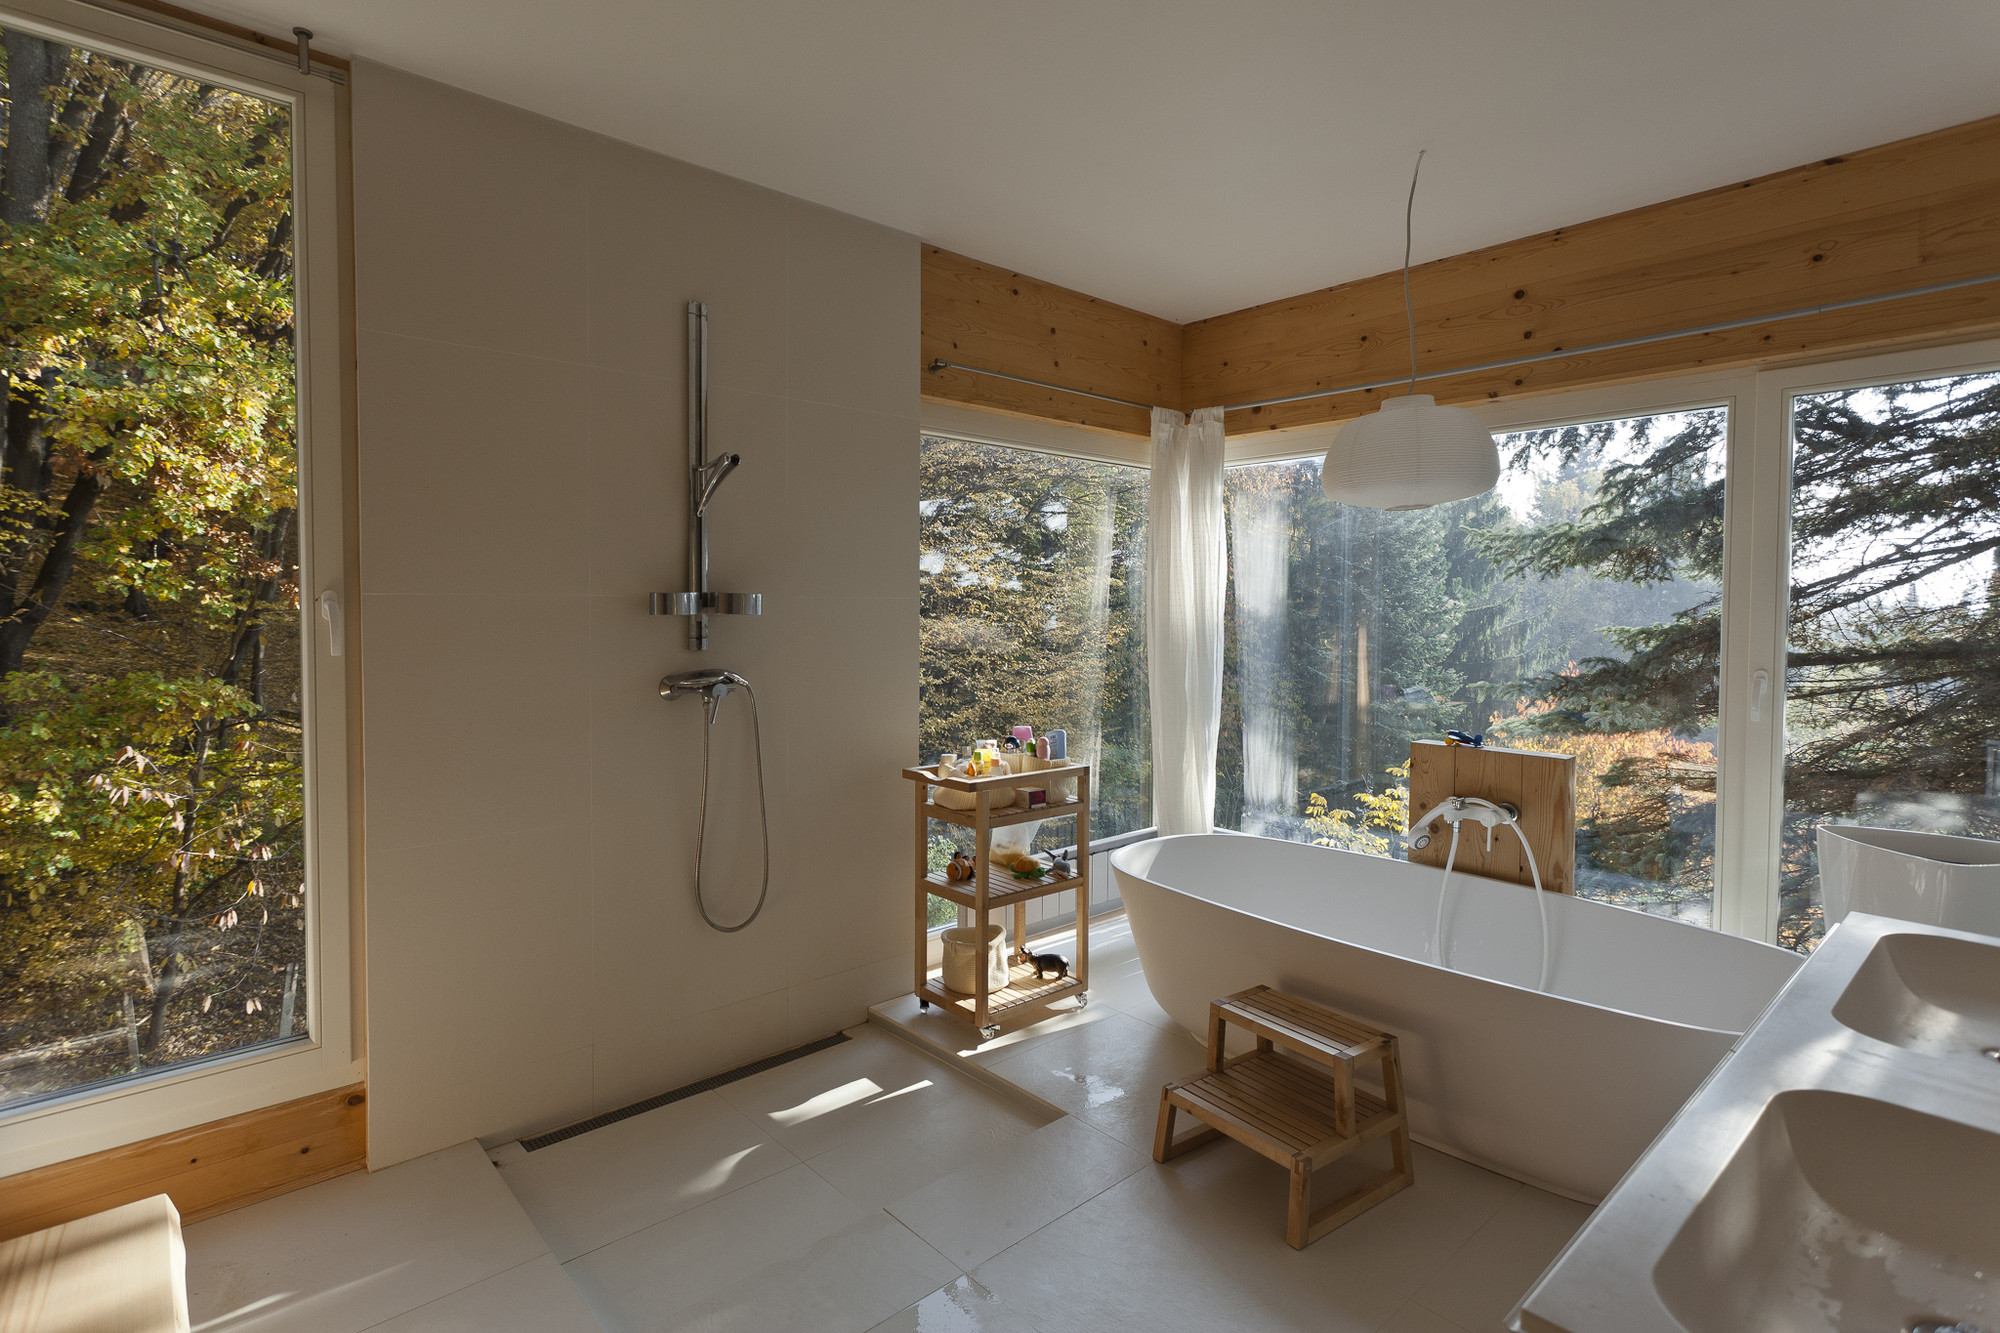 Bathroom with a view of the surrounding woods in a prefabricated timber panel house assembled in two days, Budapest, Hungary [OS] [2000×1333]